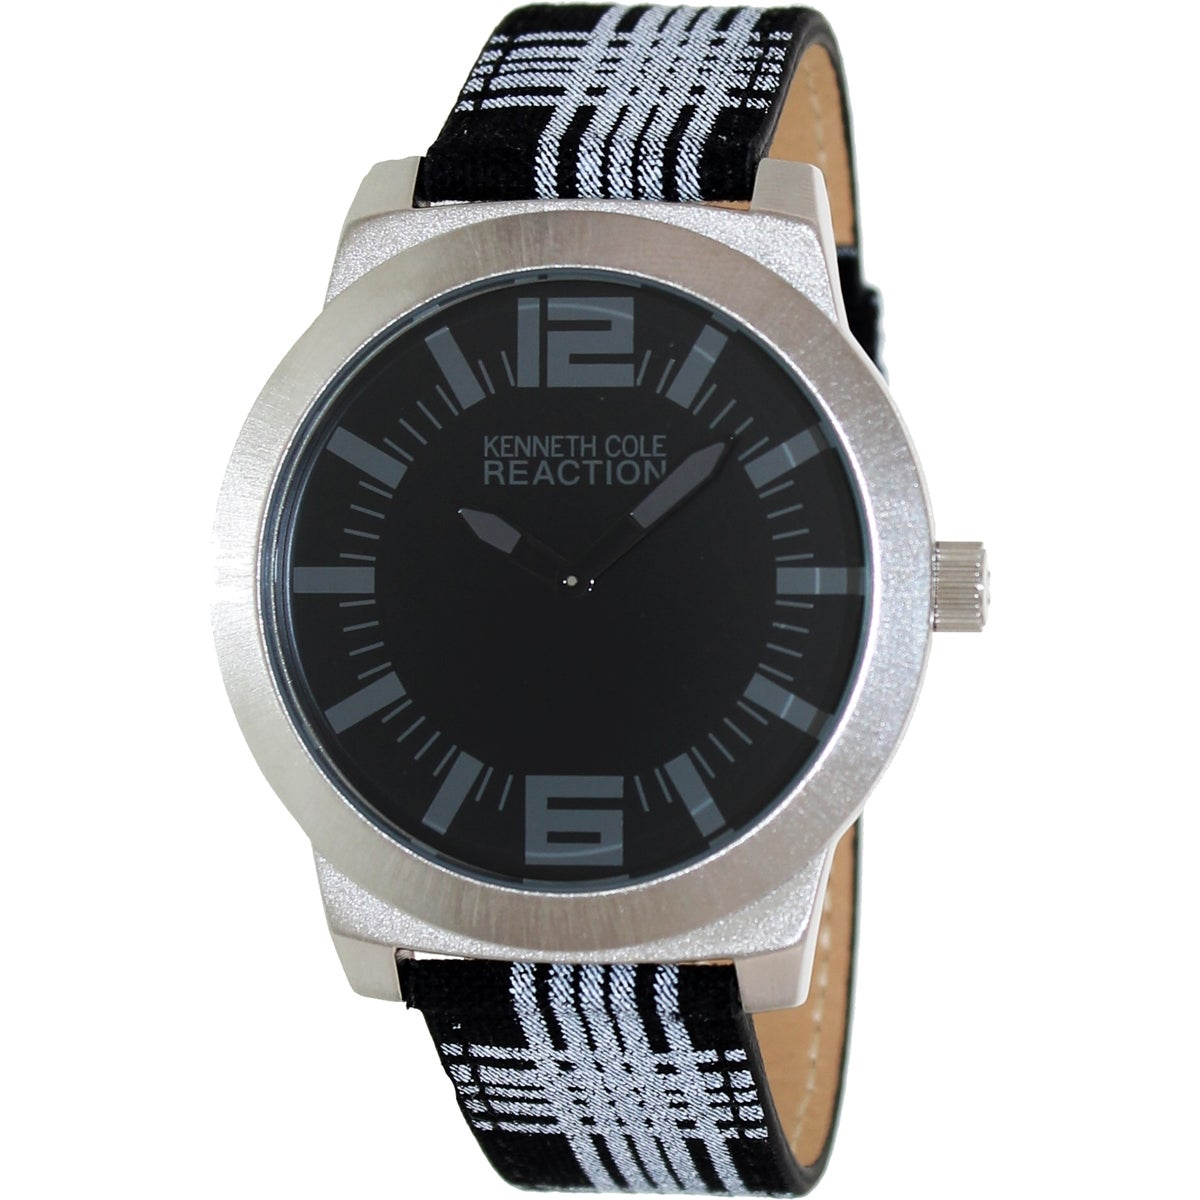 Kenneth Cole Reaction Men's Street RK1286 Two-Tone Leather Quartz Watch with Black Dial